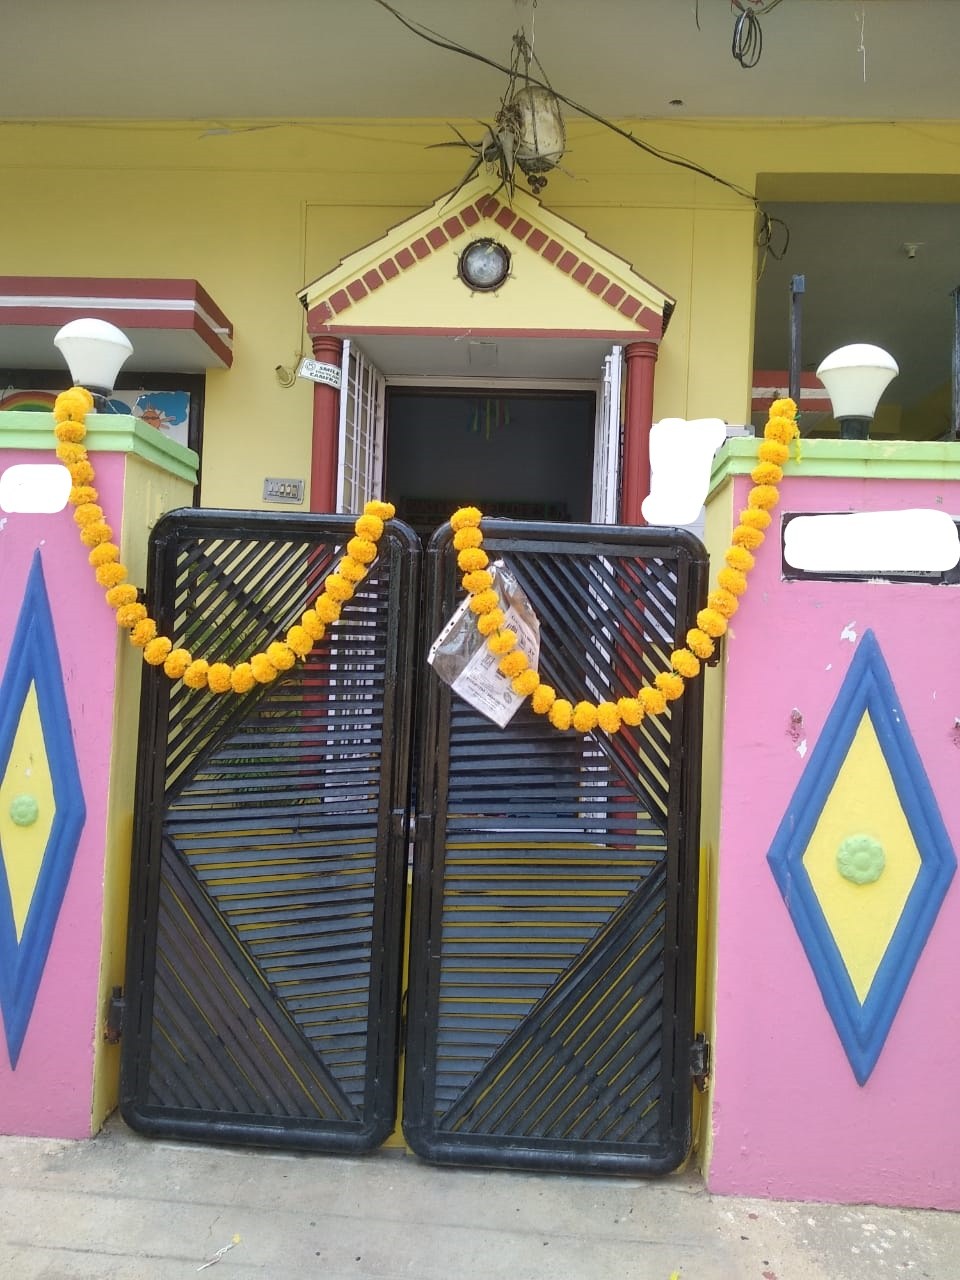 Preschool for sale with one of the renowned School and college education franchiser in Hyderabad